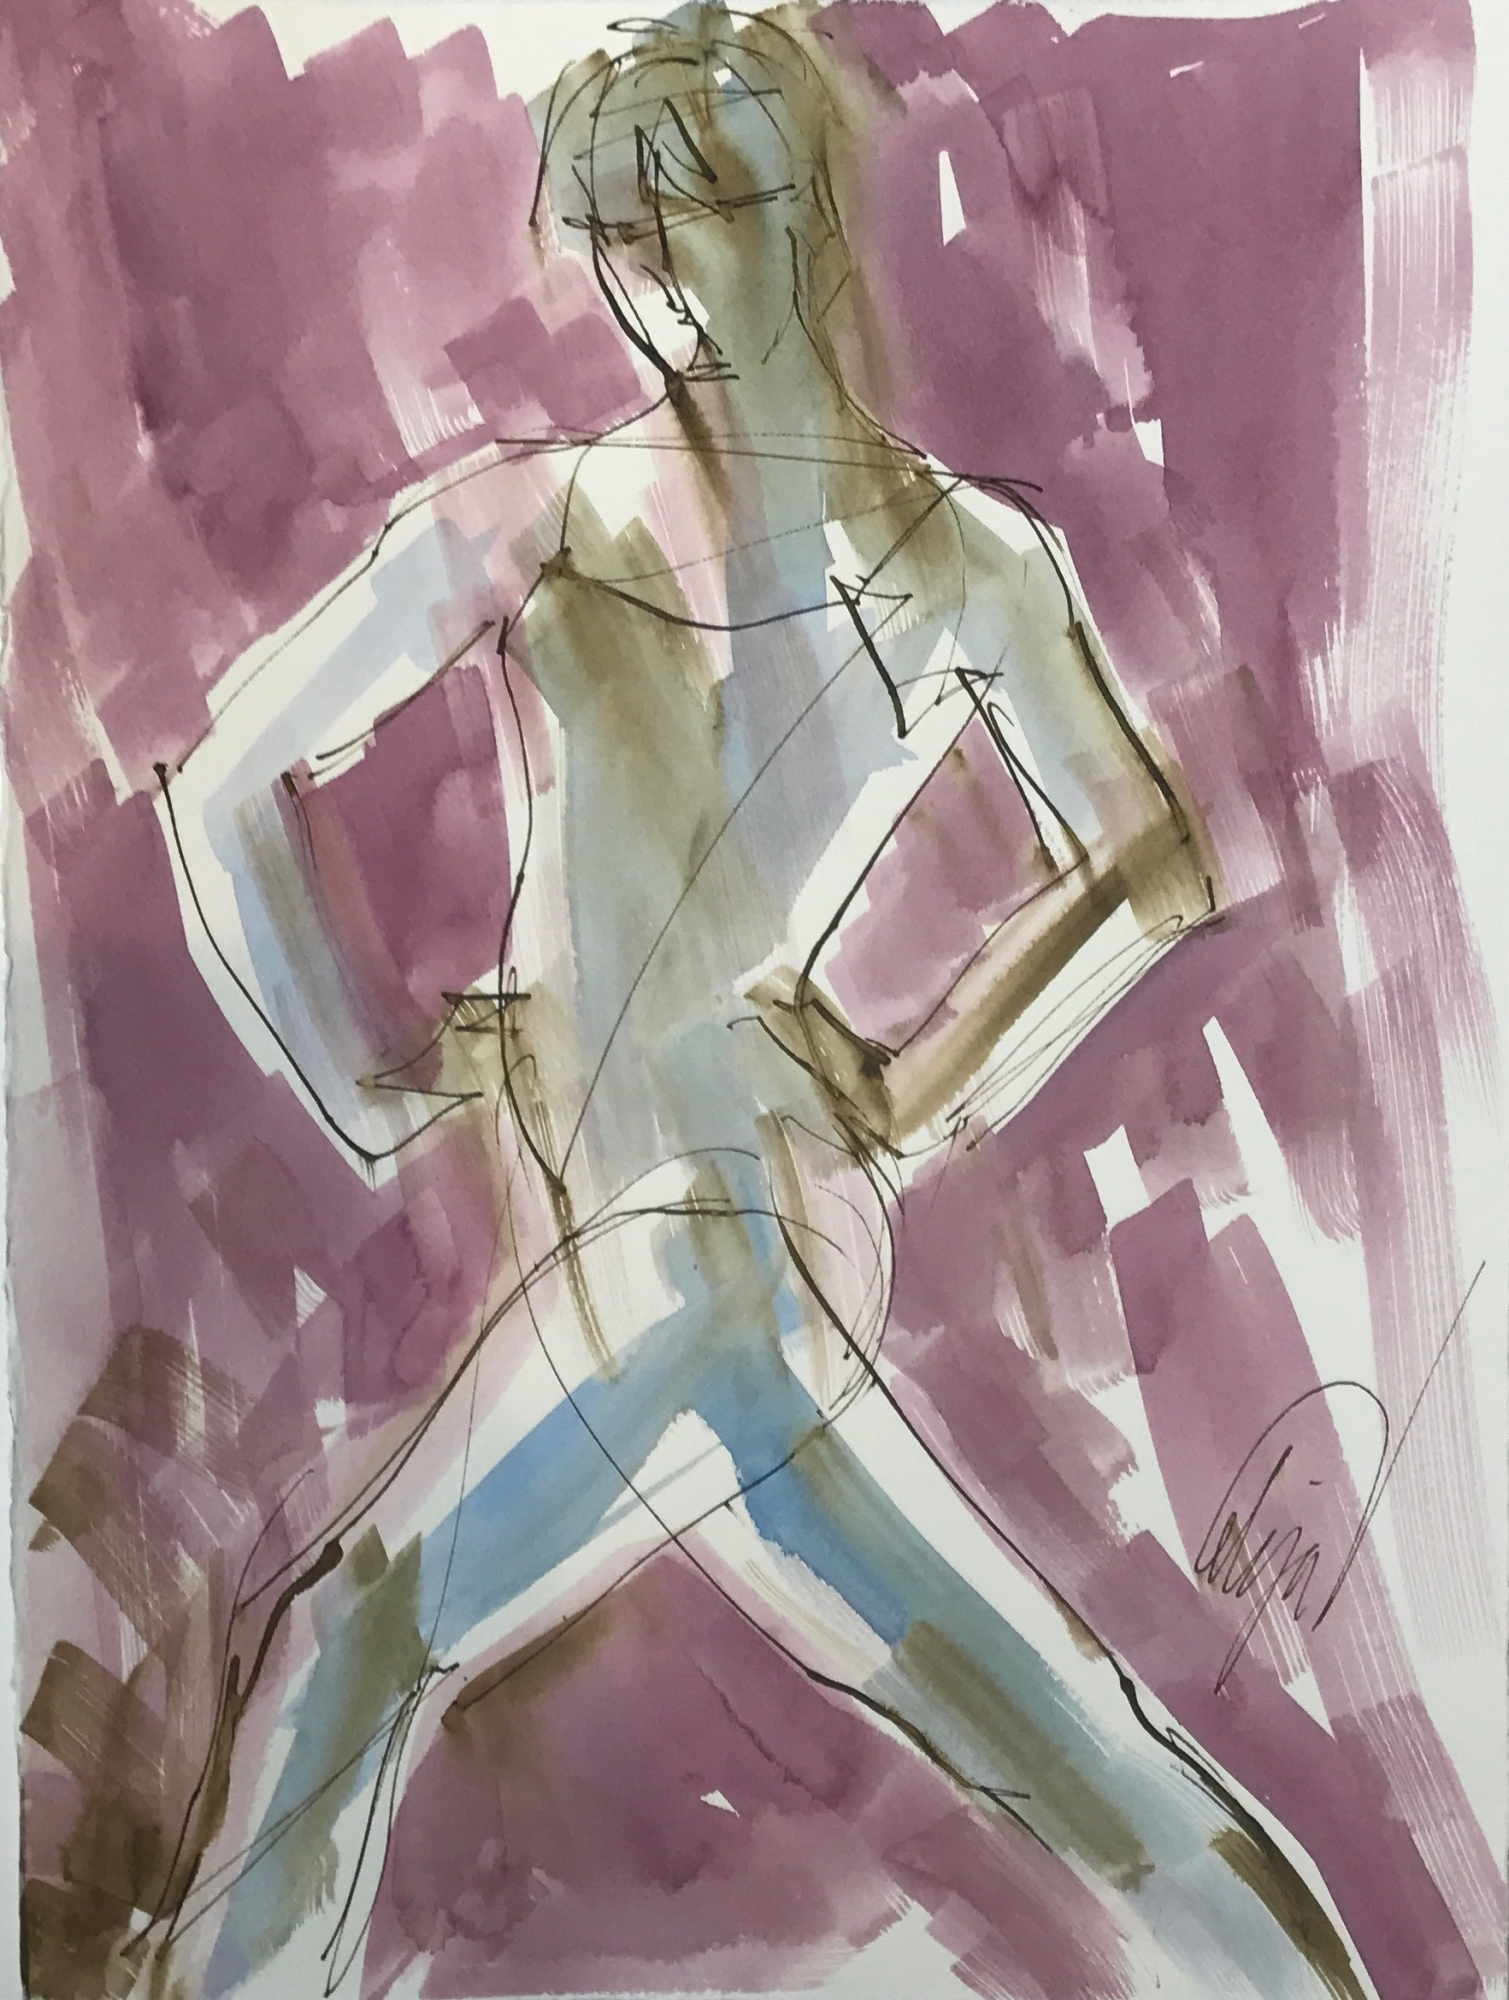 Nude with Arms on Hips  by Mel Delija